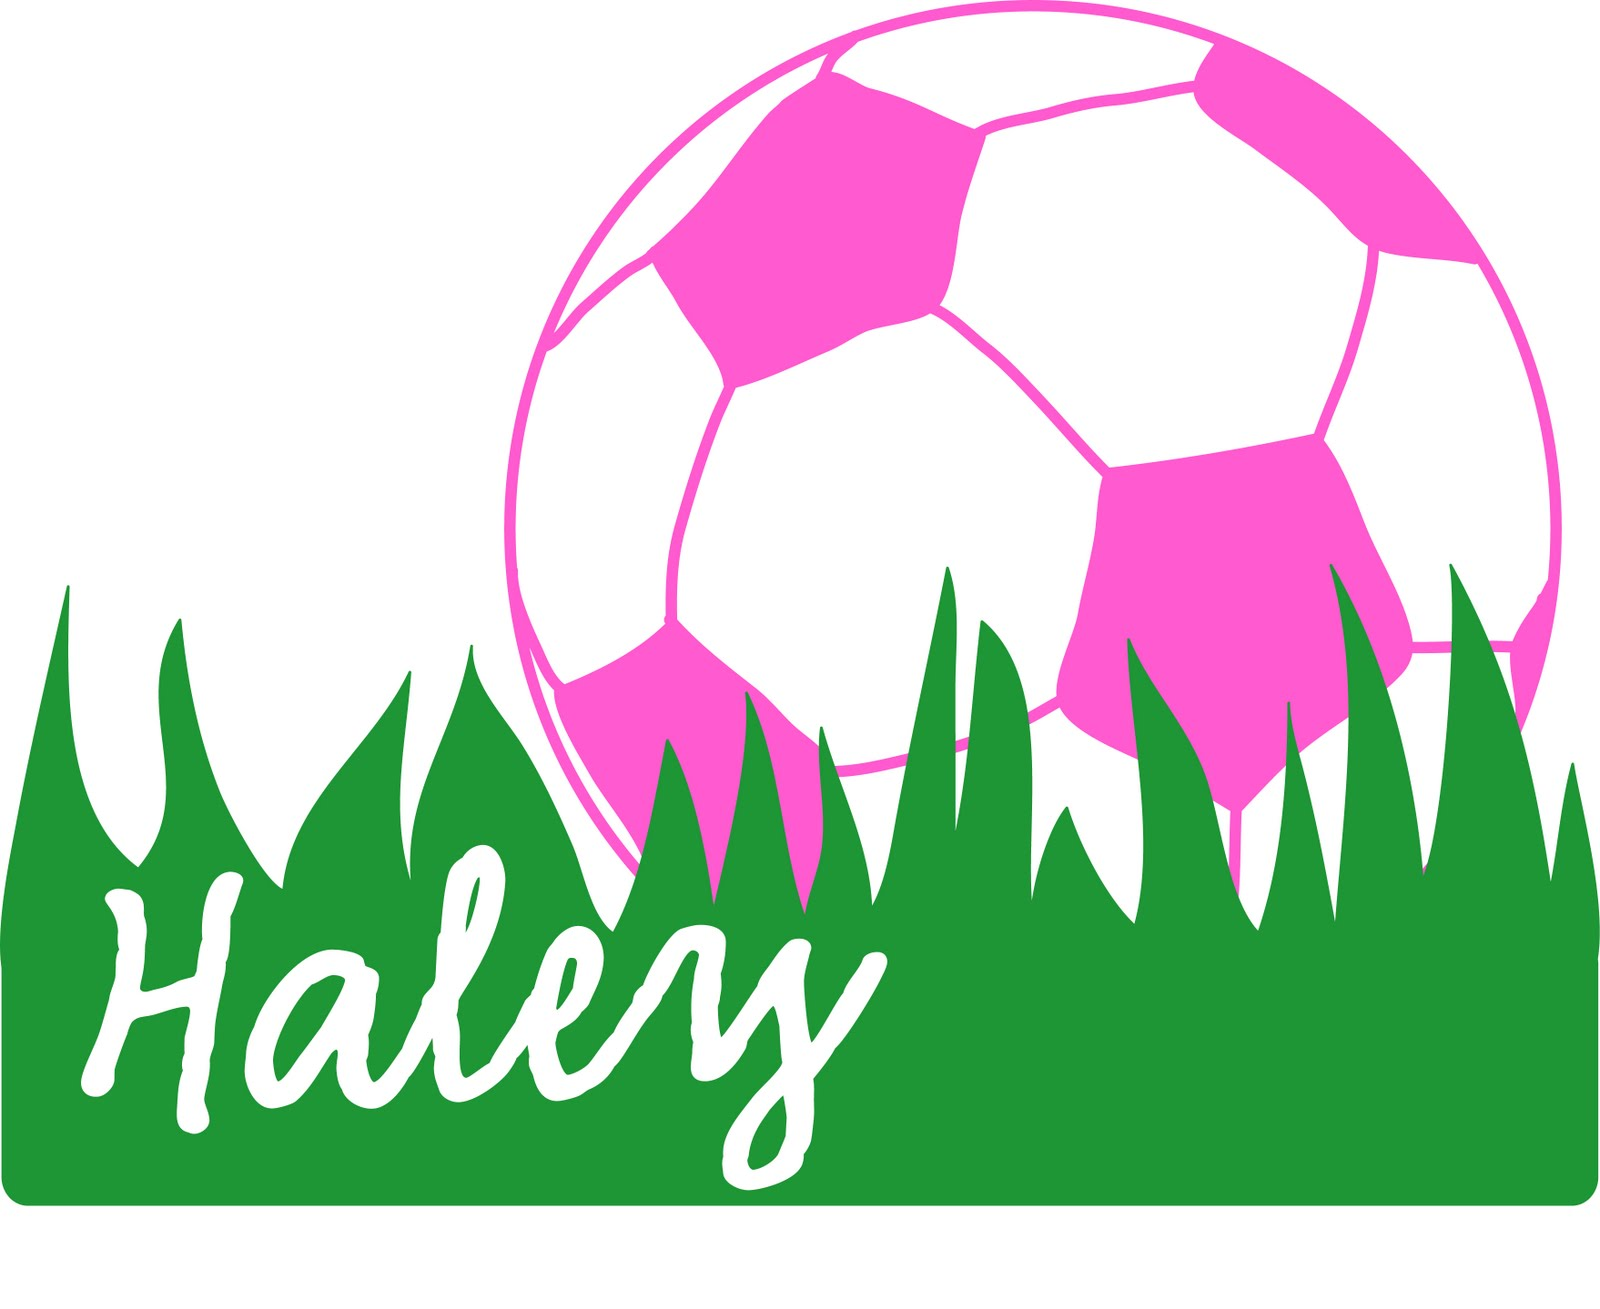 Pink soccer ball clipart clip library library Pink soccer ball clipart - ClipartFest clip library library